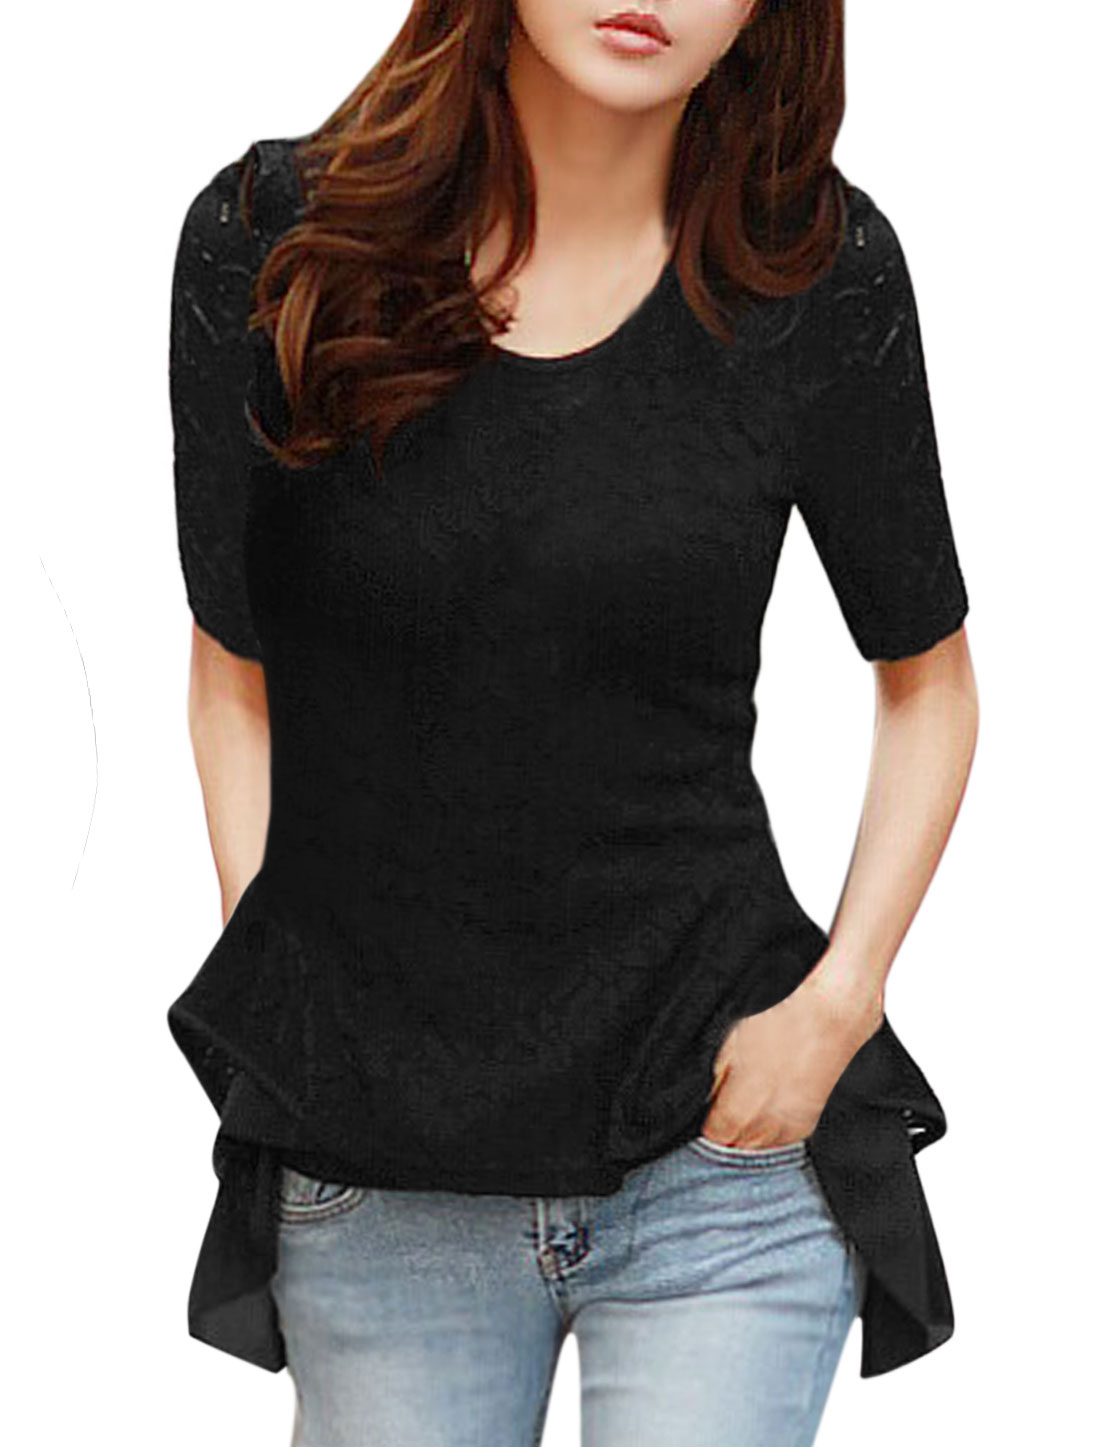 Women Short Sleeves Panel Design Irregular Hem Lace Tops Black S